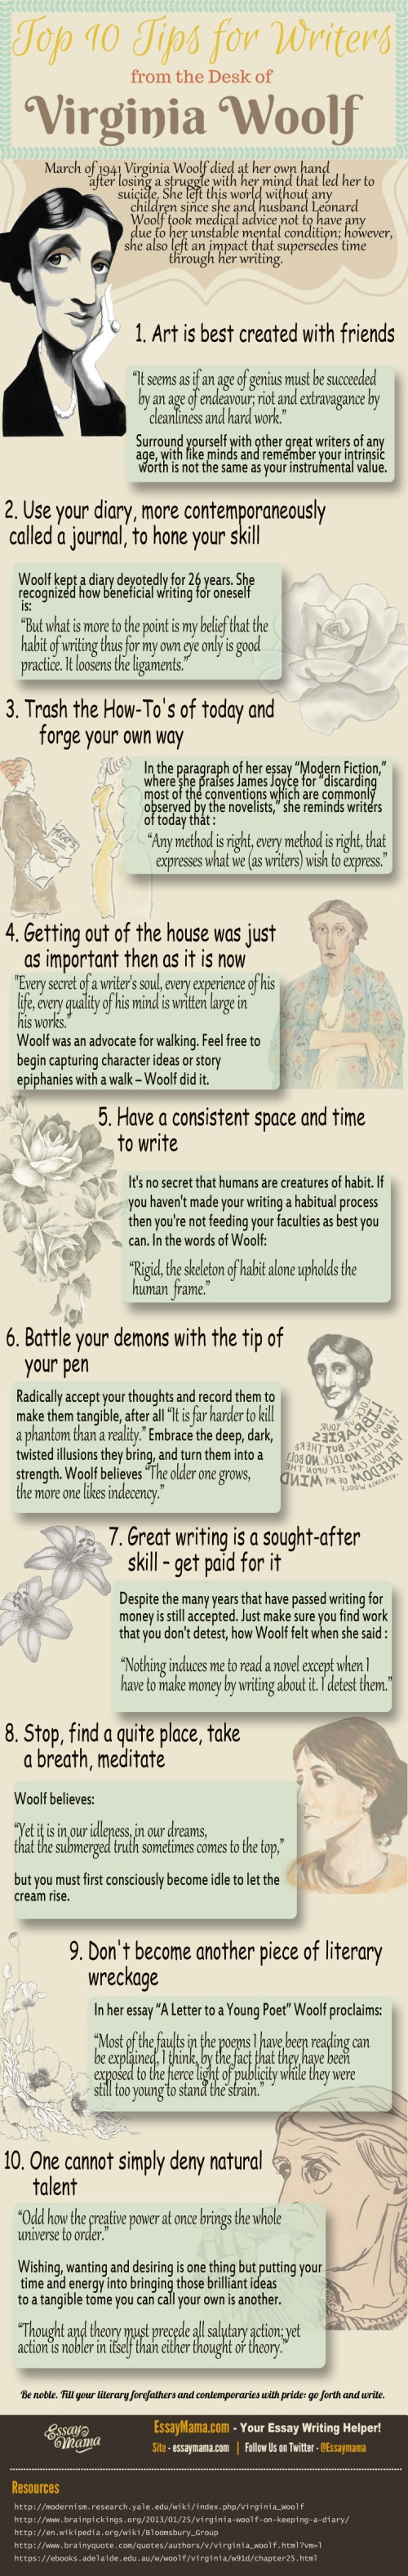 virginia-woolf-infographic